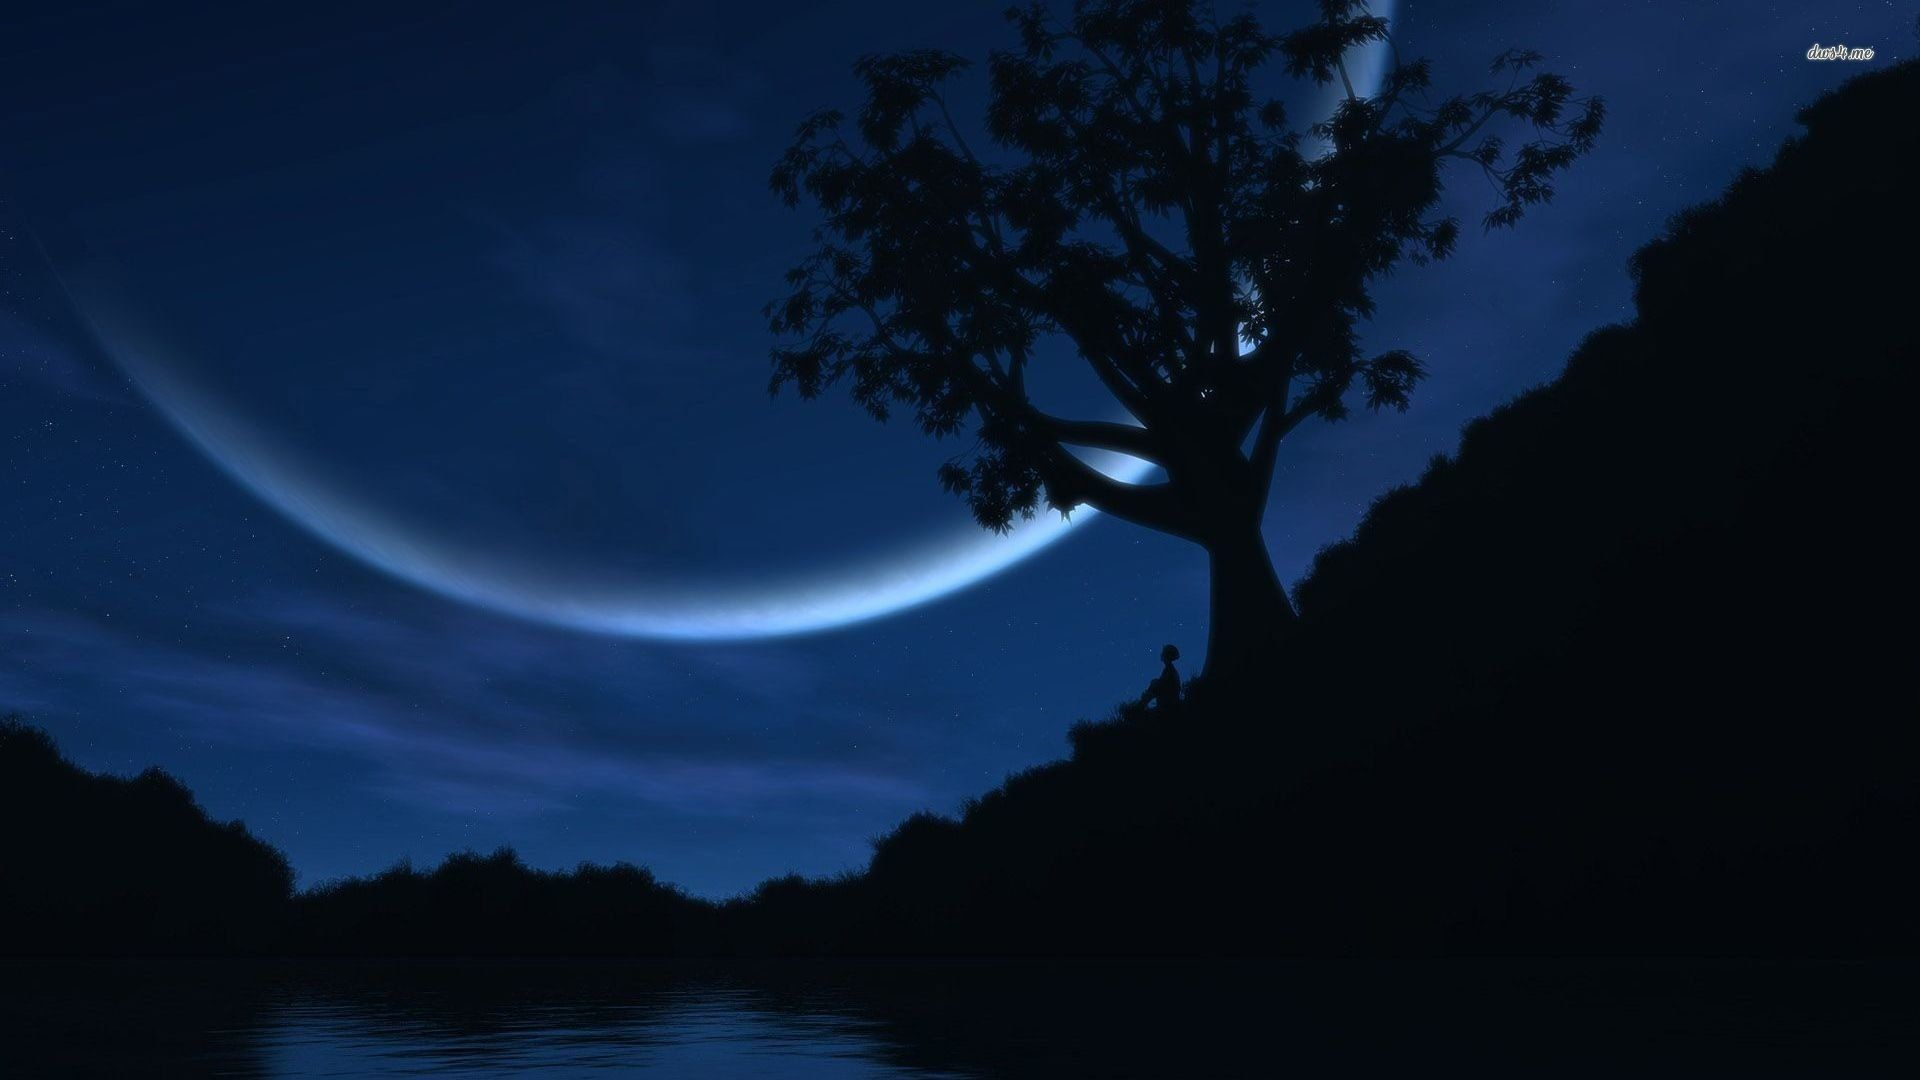 Wallpapers Moonlight 71 Background Pictures